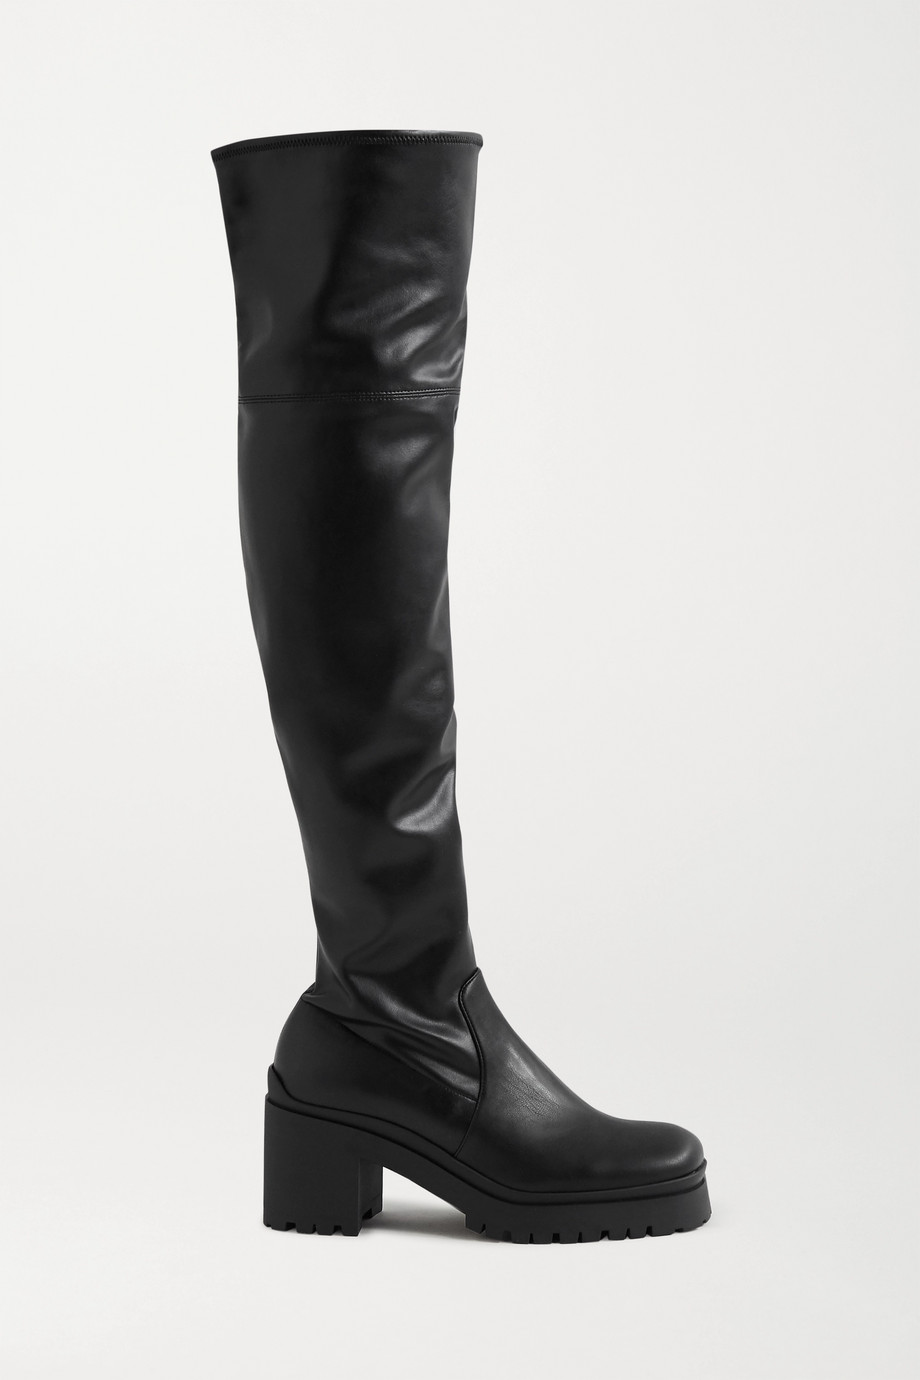 Miu Miu Leather platform over-the-knee boots